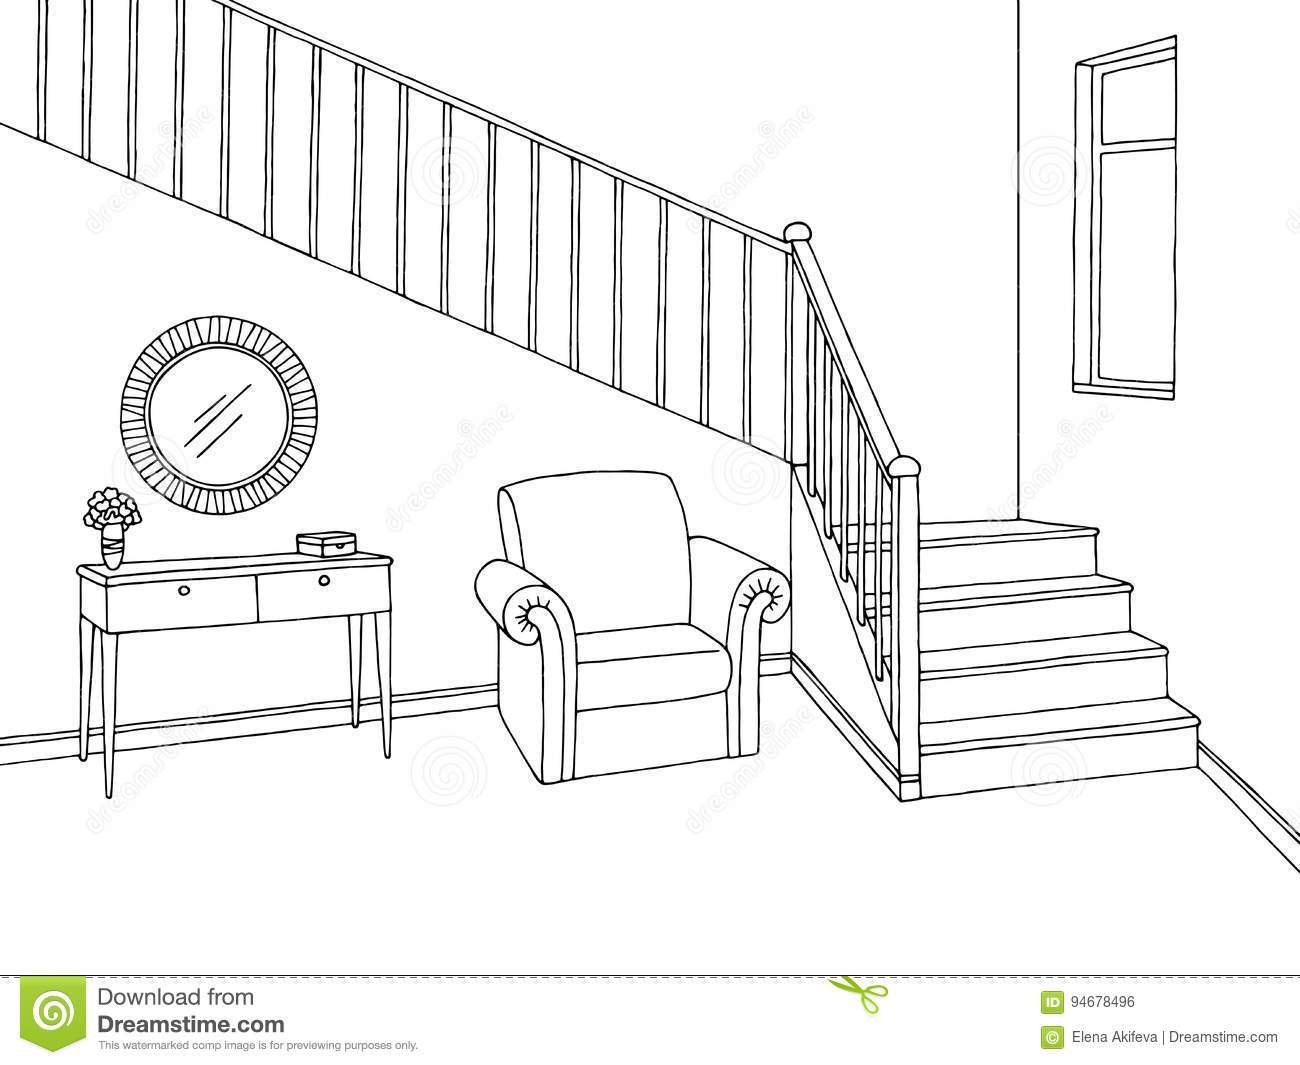 Stairs black and white clipart graphic freeuse stock Stairs clipart black and white 7 » Clipart Portal graphic freeuse stock